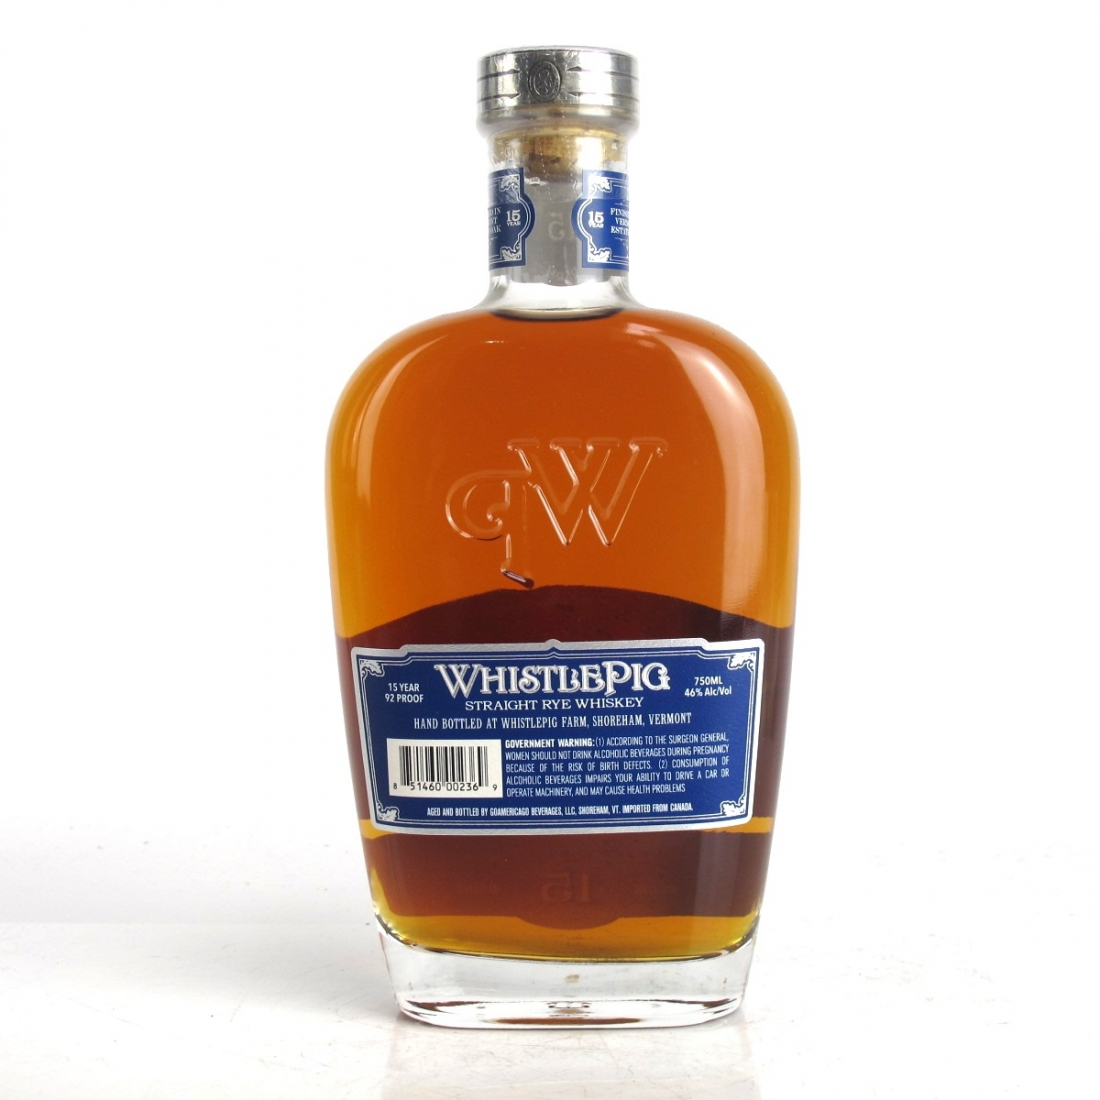 Whistlepig 15 Year Old Straight Rye